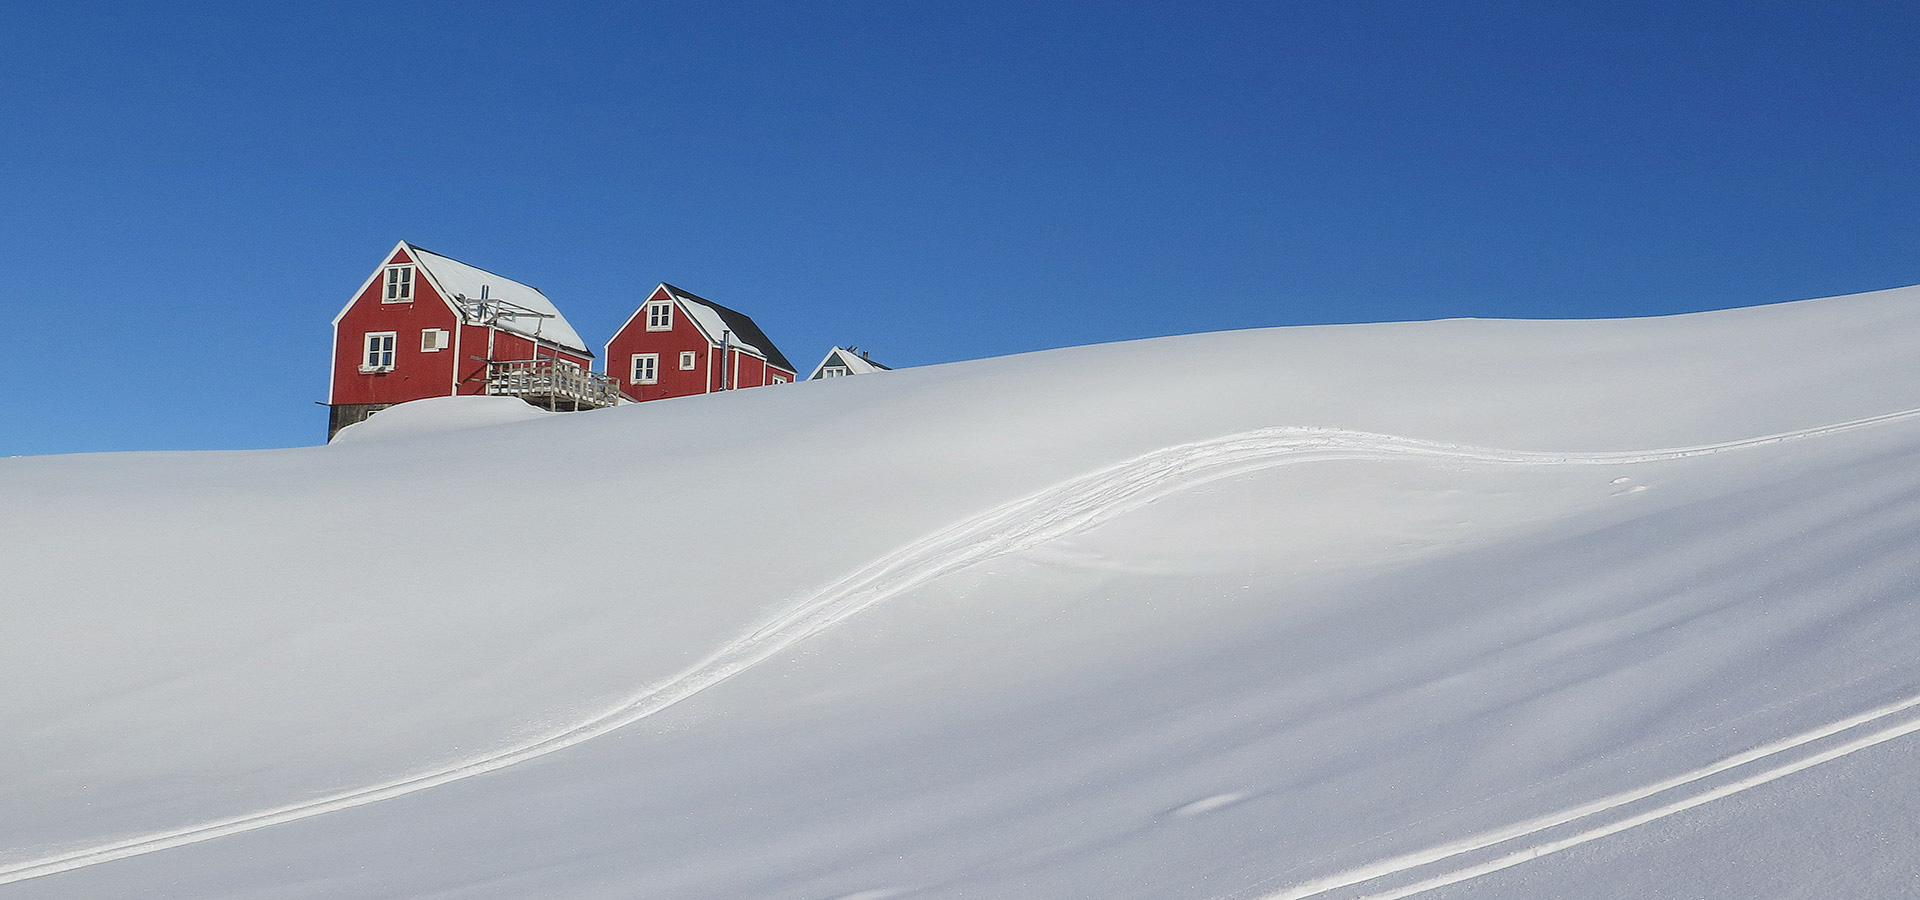 The Red House - Eastgreenland - Aktivitäten - Langlaufski